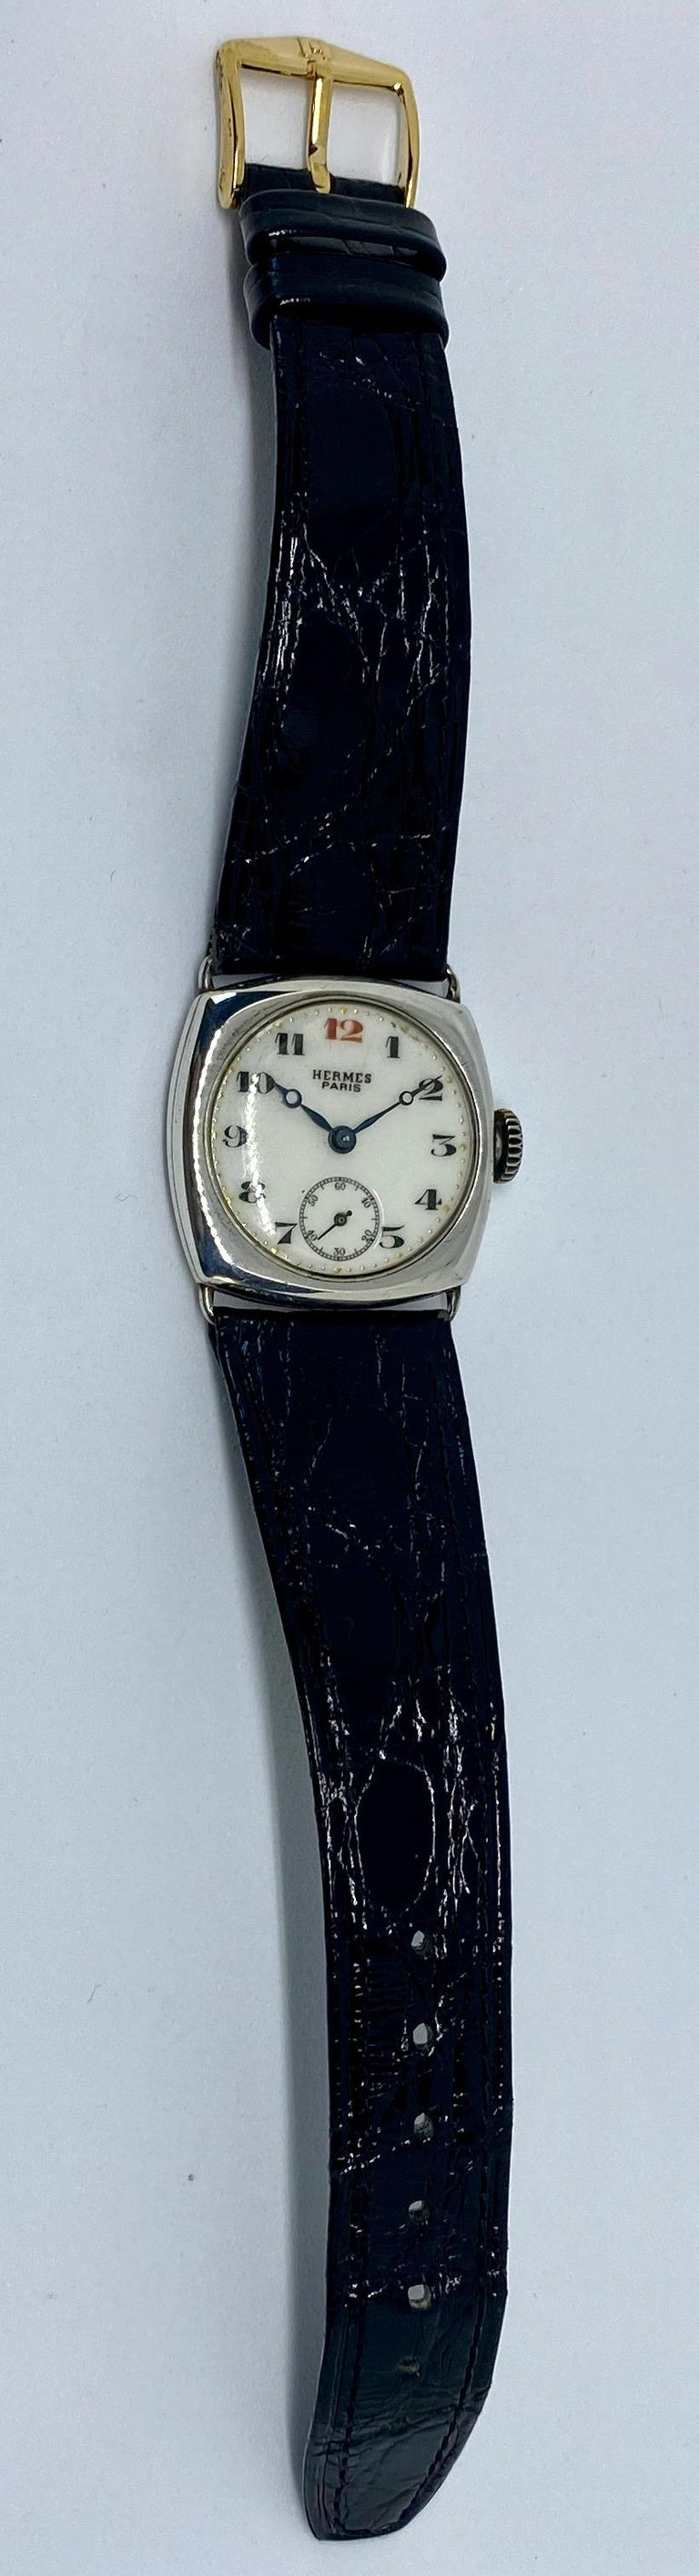 A vintage, entirely original, manual-wind wristwatch signed Hermes Paris.  Featuring a round, white porcelain face in a squared sterling silver case, with Breguet numerals in black (red at 12:00), Breguet (